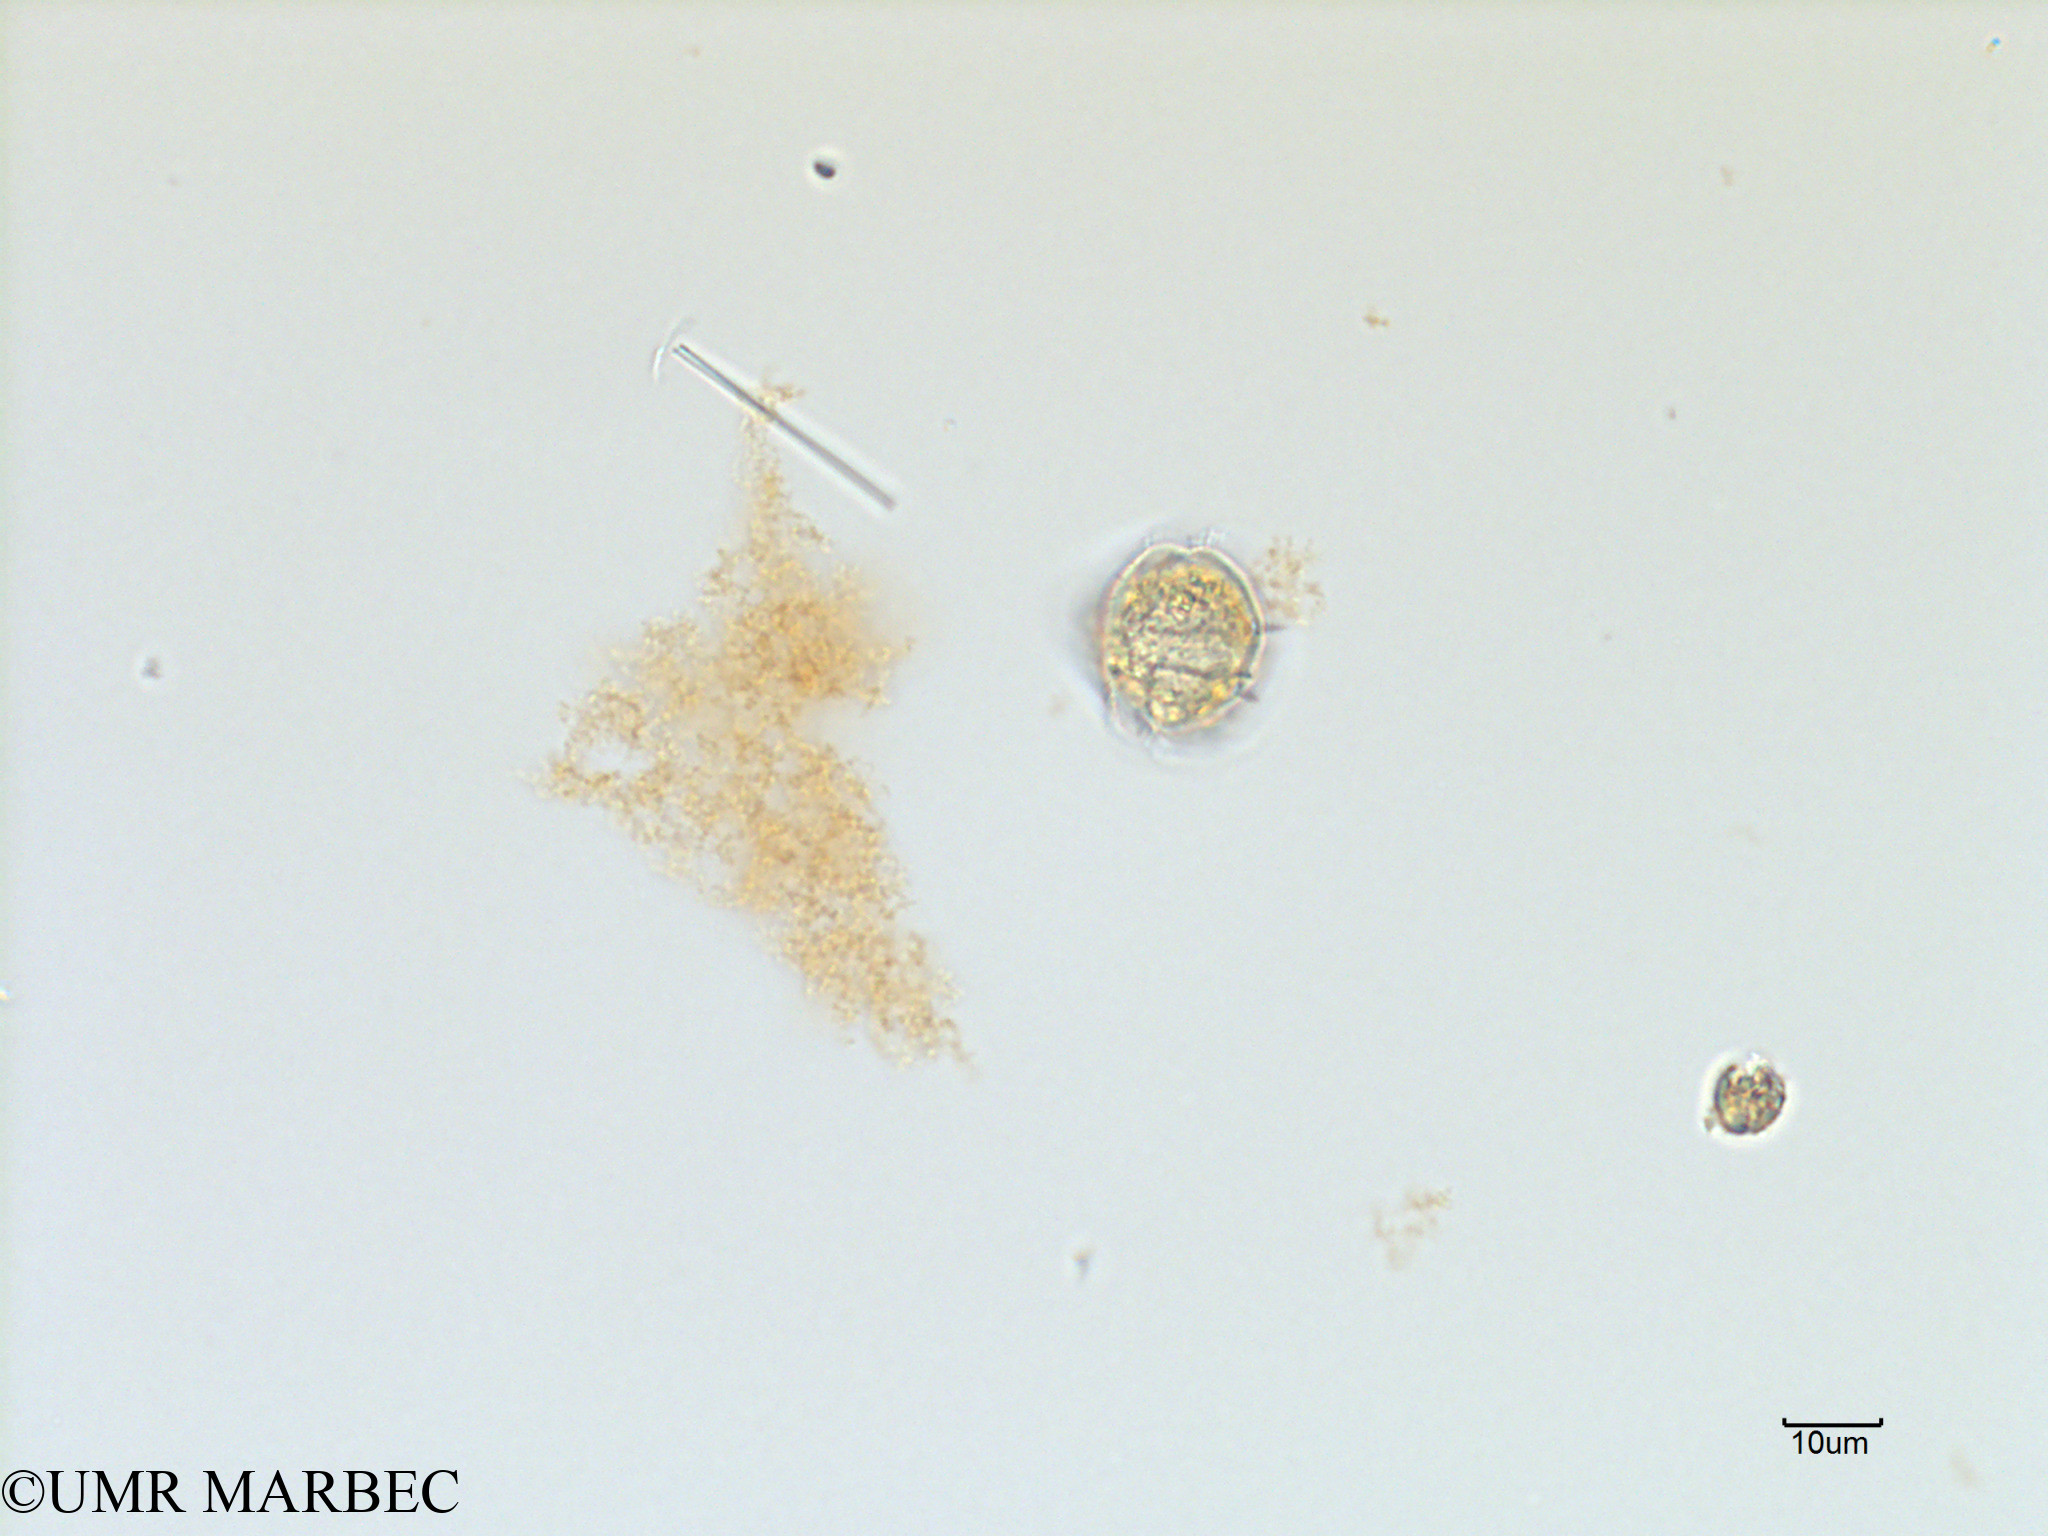 phyto/Scattered_Islands/iles_glorieuses/SIREME November 2015/Protoperidinium sp43 (SIREME-Glorieuses2015-ech4-231116-photo42-3)(copy).jpg